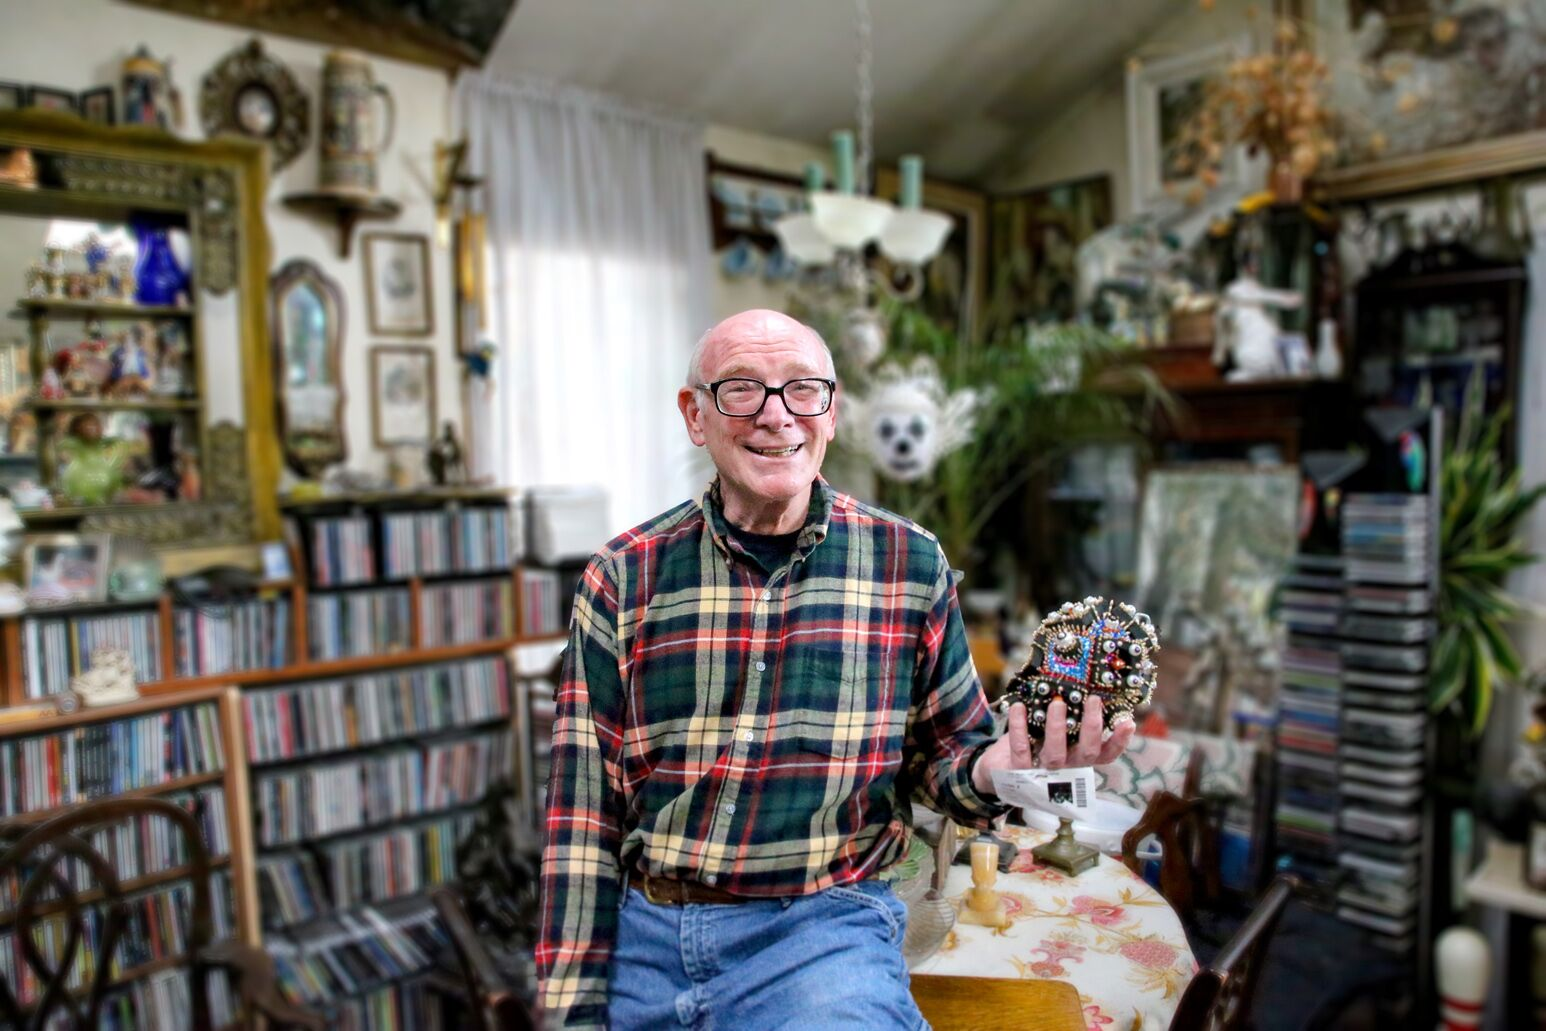 John Fischer, at home with his eclectic collection of memorabilia. The Enhanced Recovery Program helped him heal after colorectal surgery.